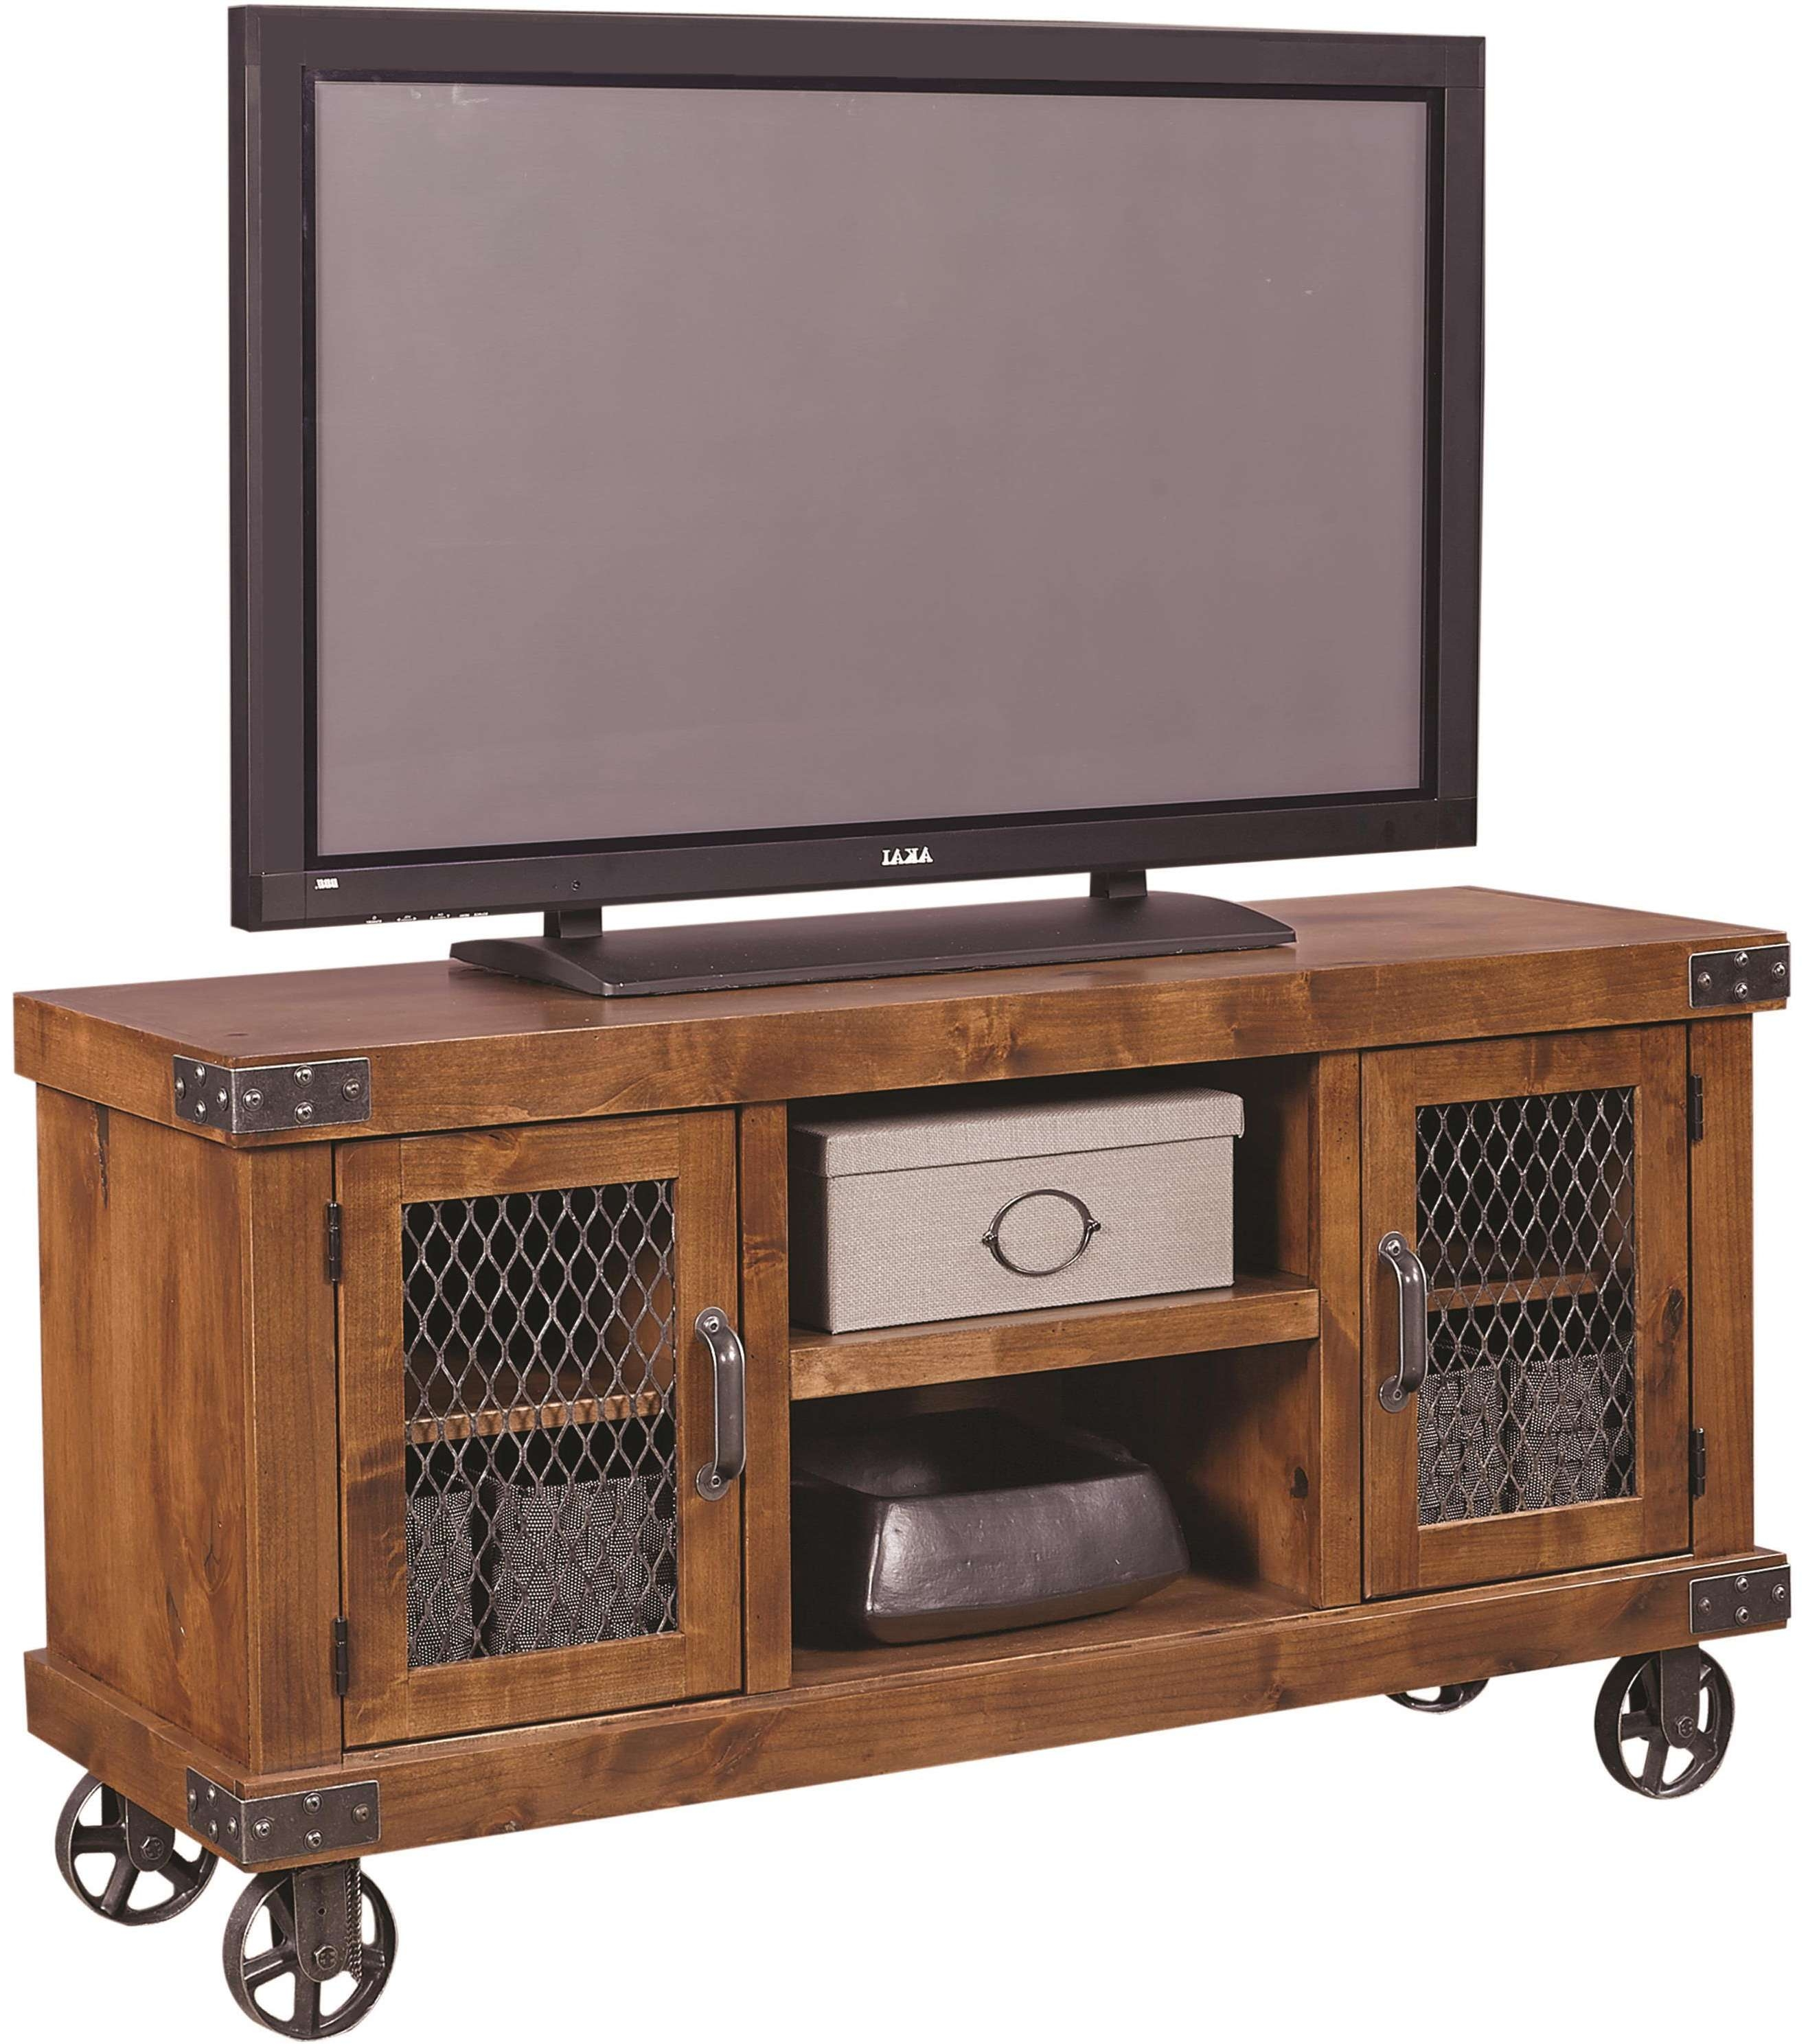 Encouraging Industrial Tv Stand Entertainment Center Rustic Wood In Industrial Tv Cabinets (Gallery 6 of 20)